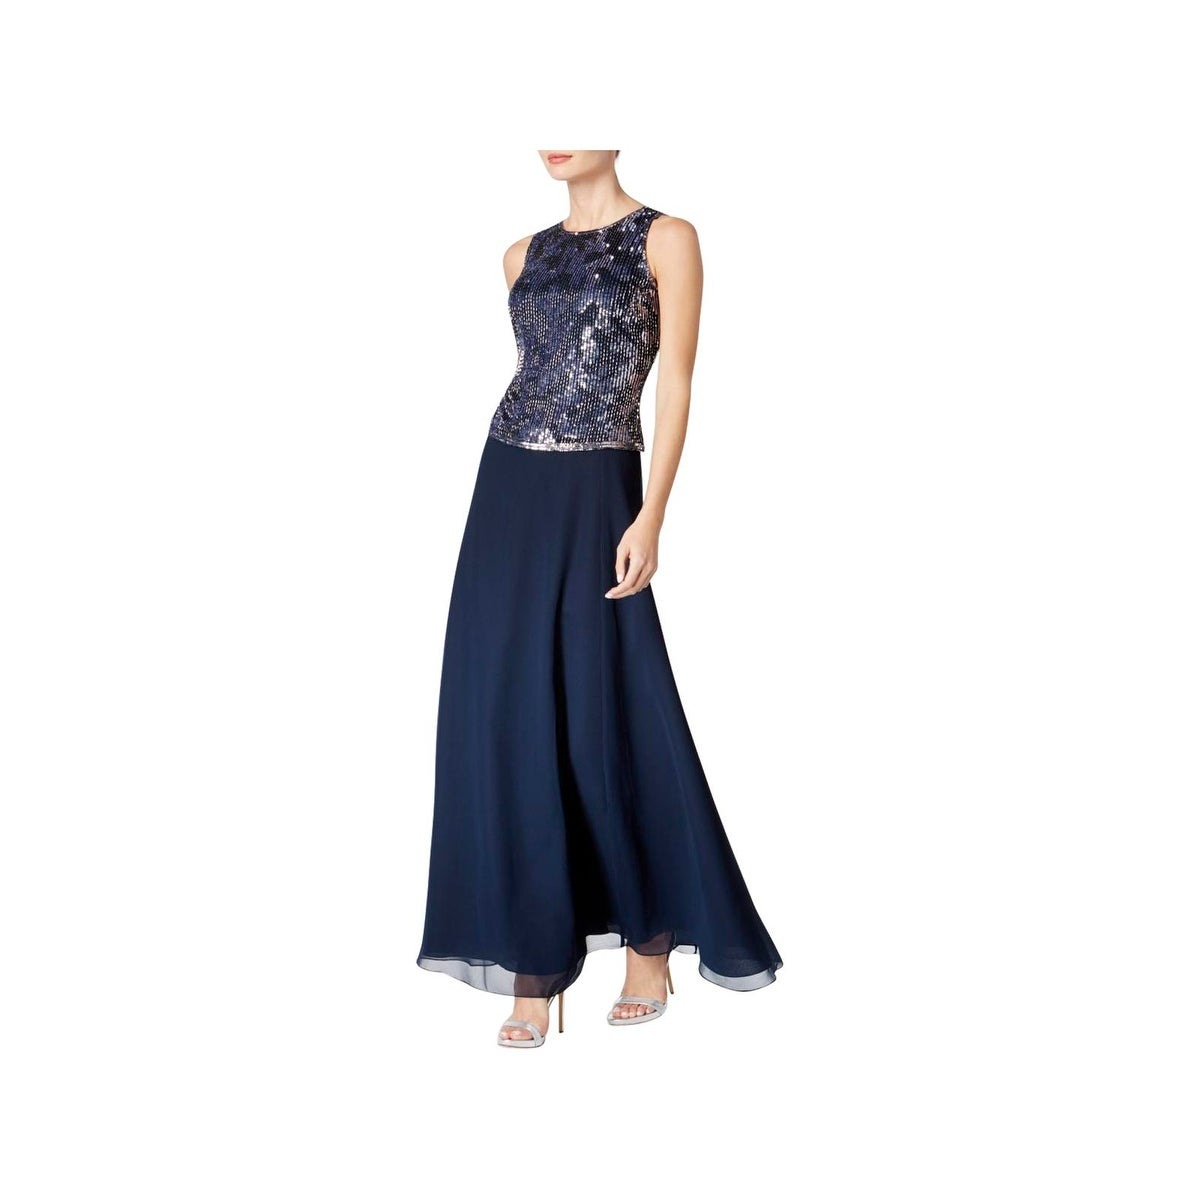 0f9cfea0a207 J Kara Dresses | Find Great Women's Clothing Deals Shopping at Overstock